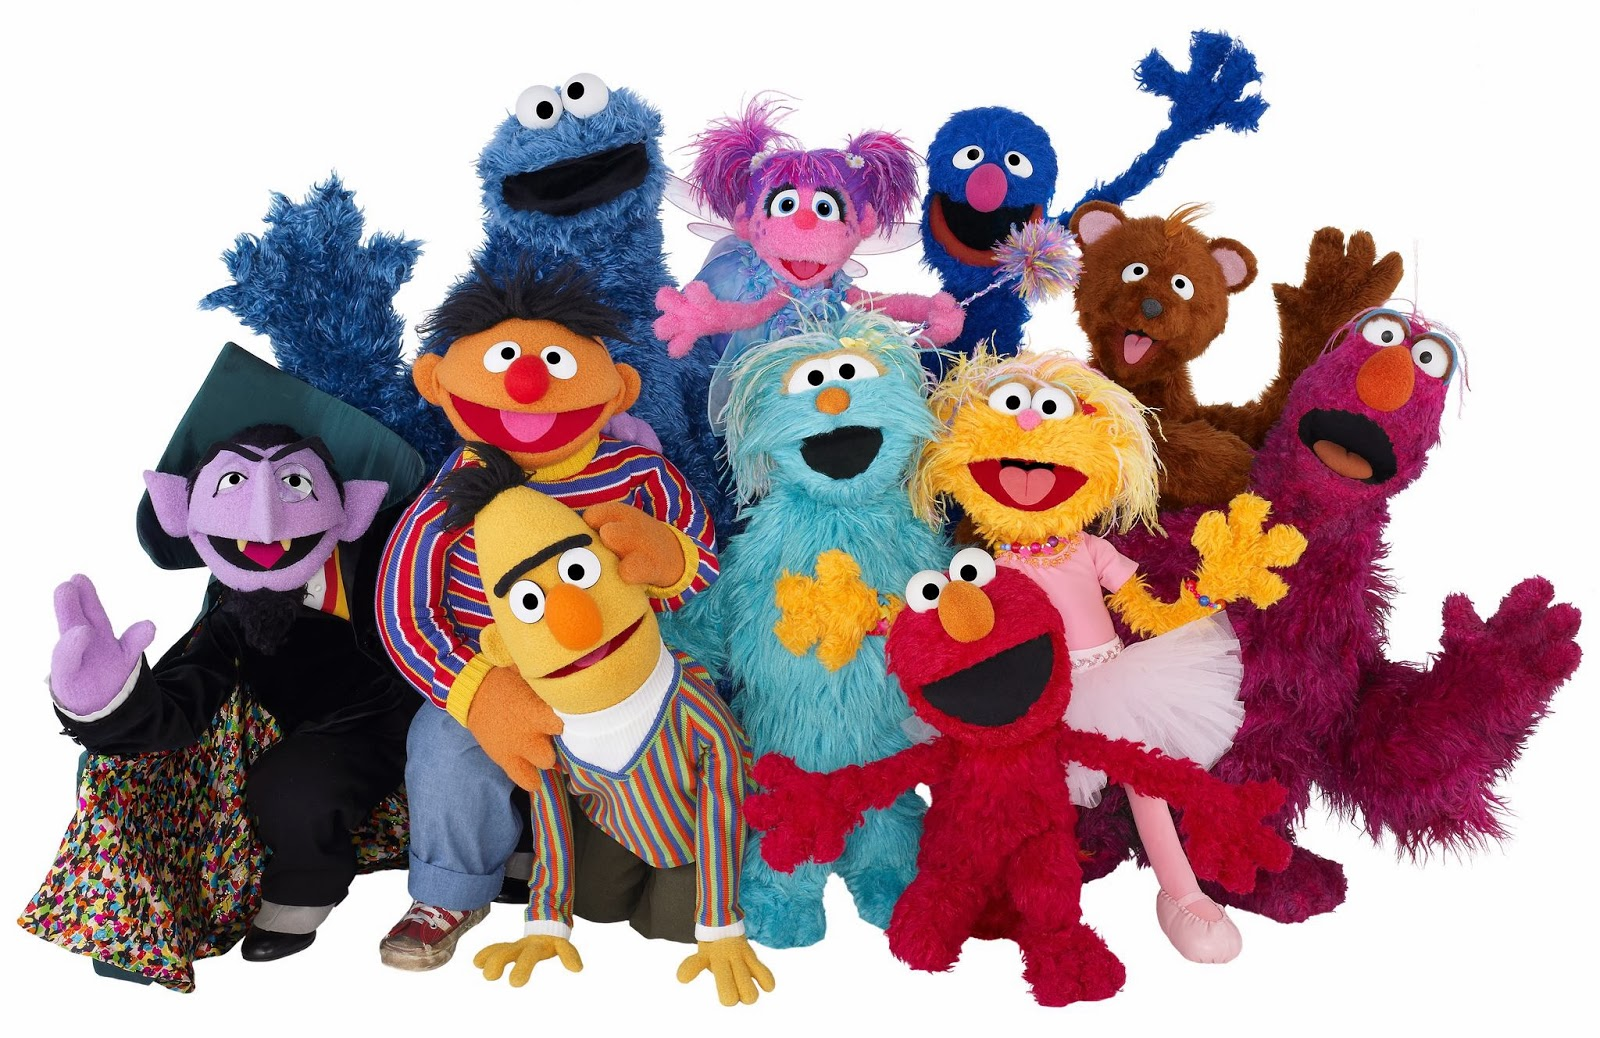 Baby Sesame Street Characters Names with their own characters